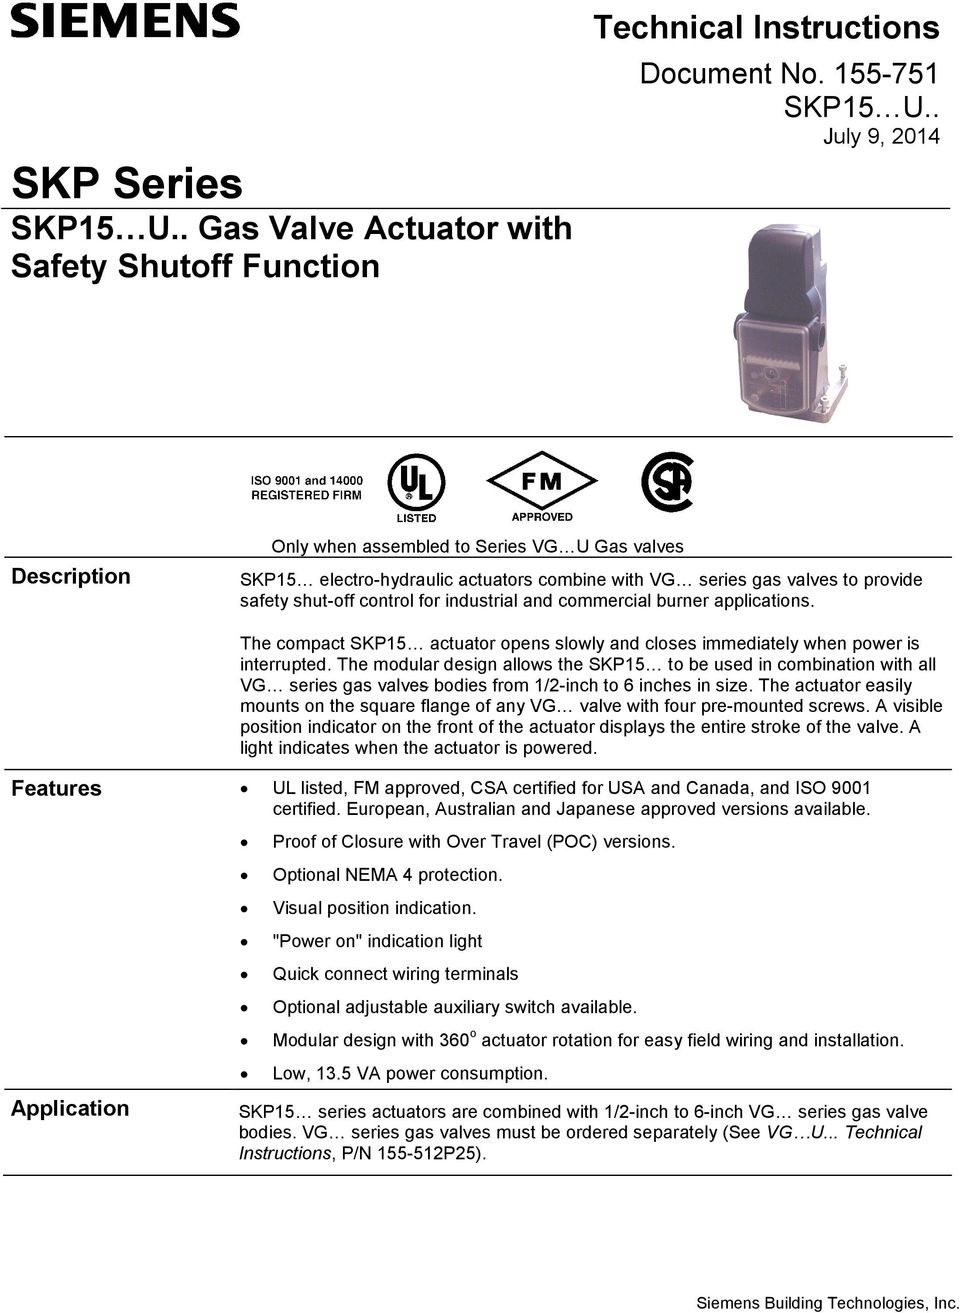 The compact SKP15 actuator opens slowly and closes immediately when power  is interrupted.